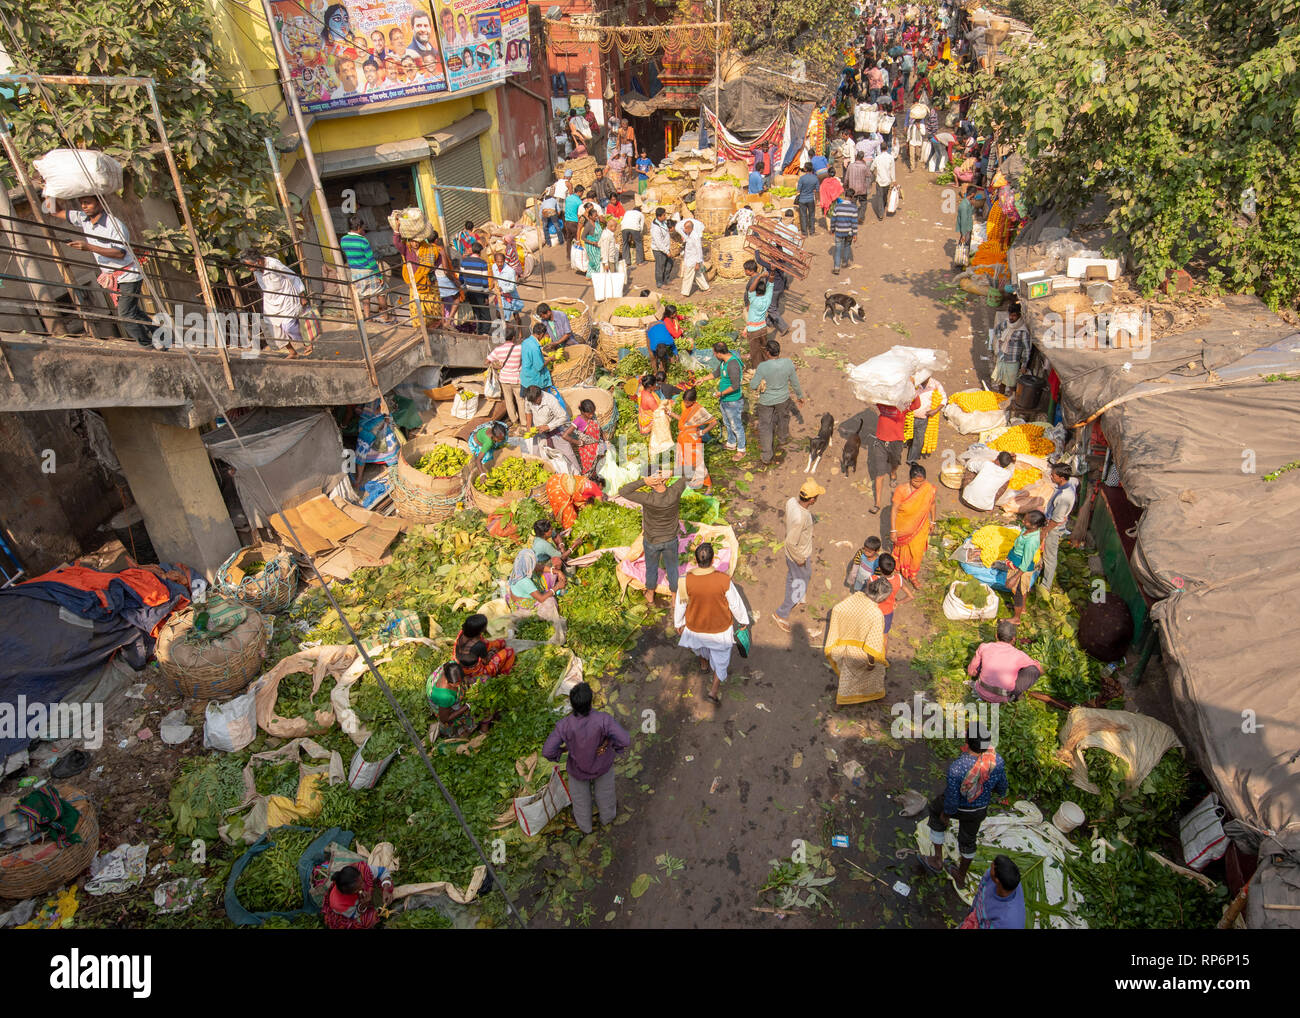 Aerial view over part of the Mullick Ghat Flower Market on a sunny day with crowds of local people sellers and buyers. - Stock Image